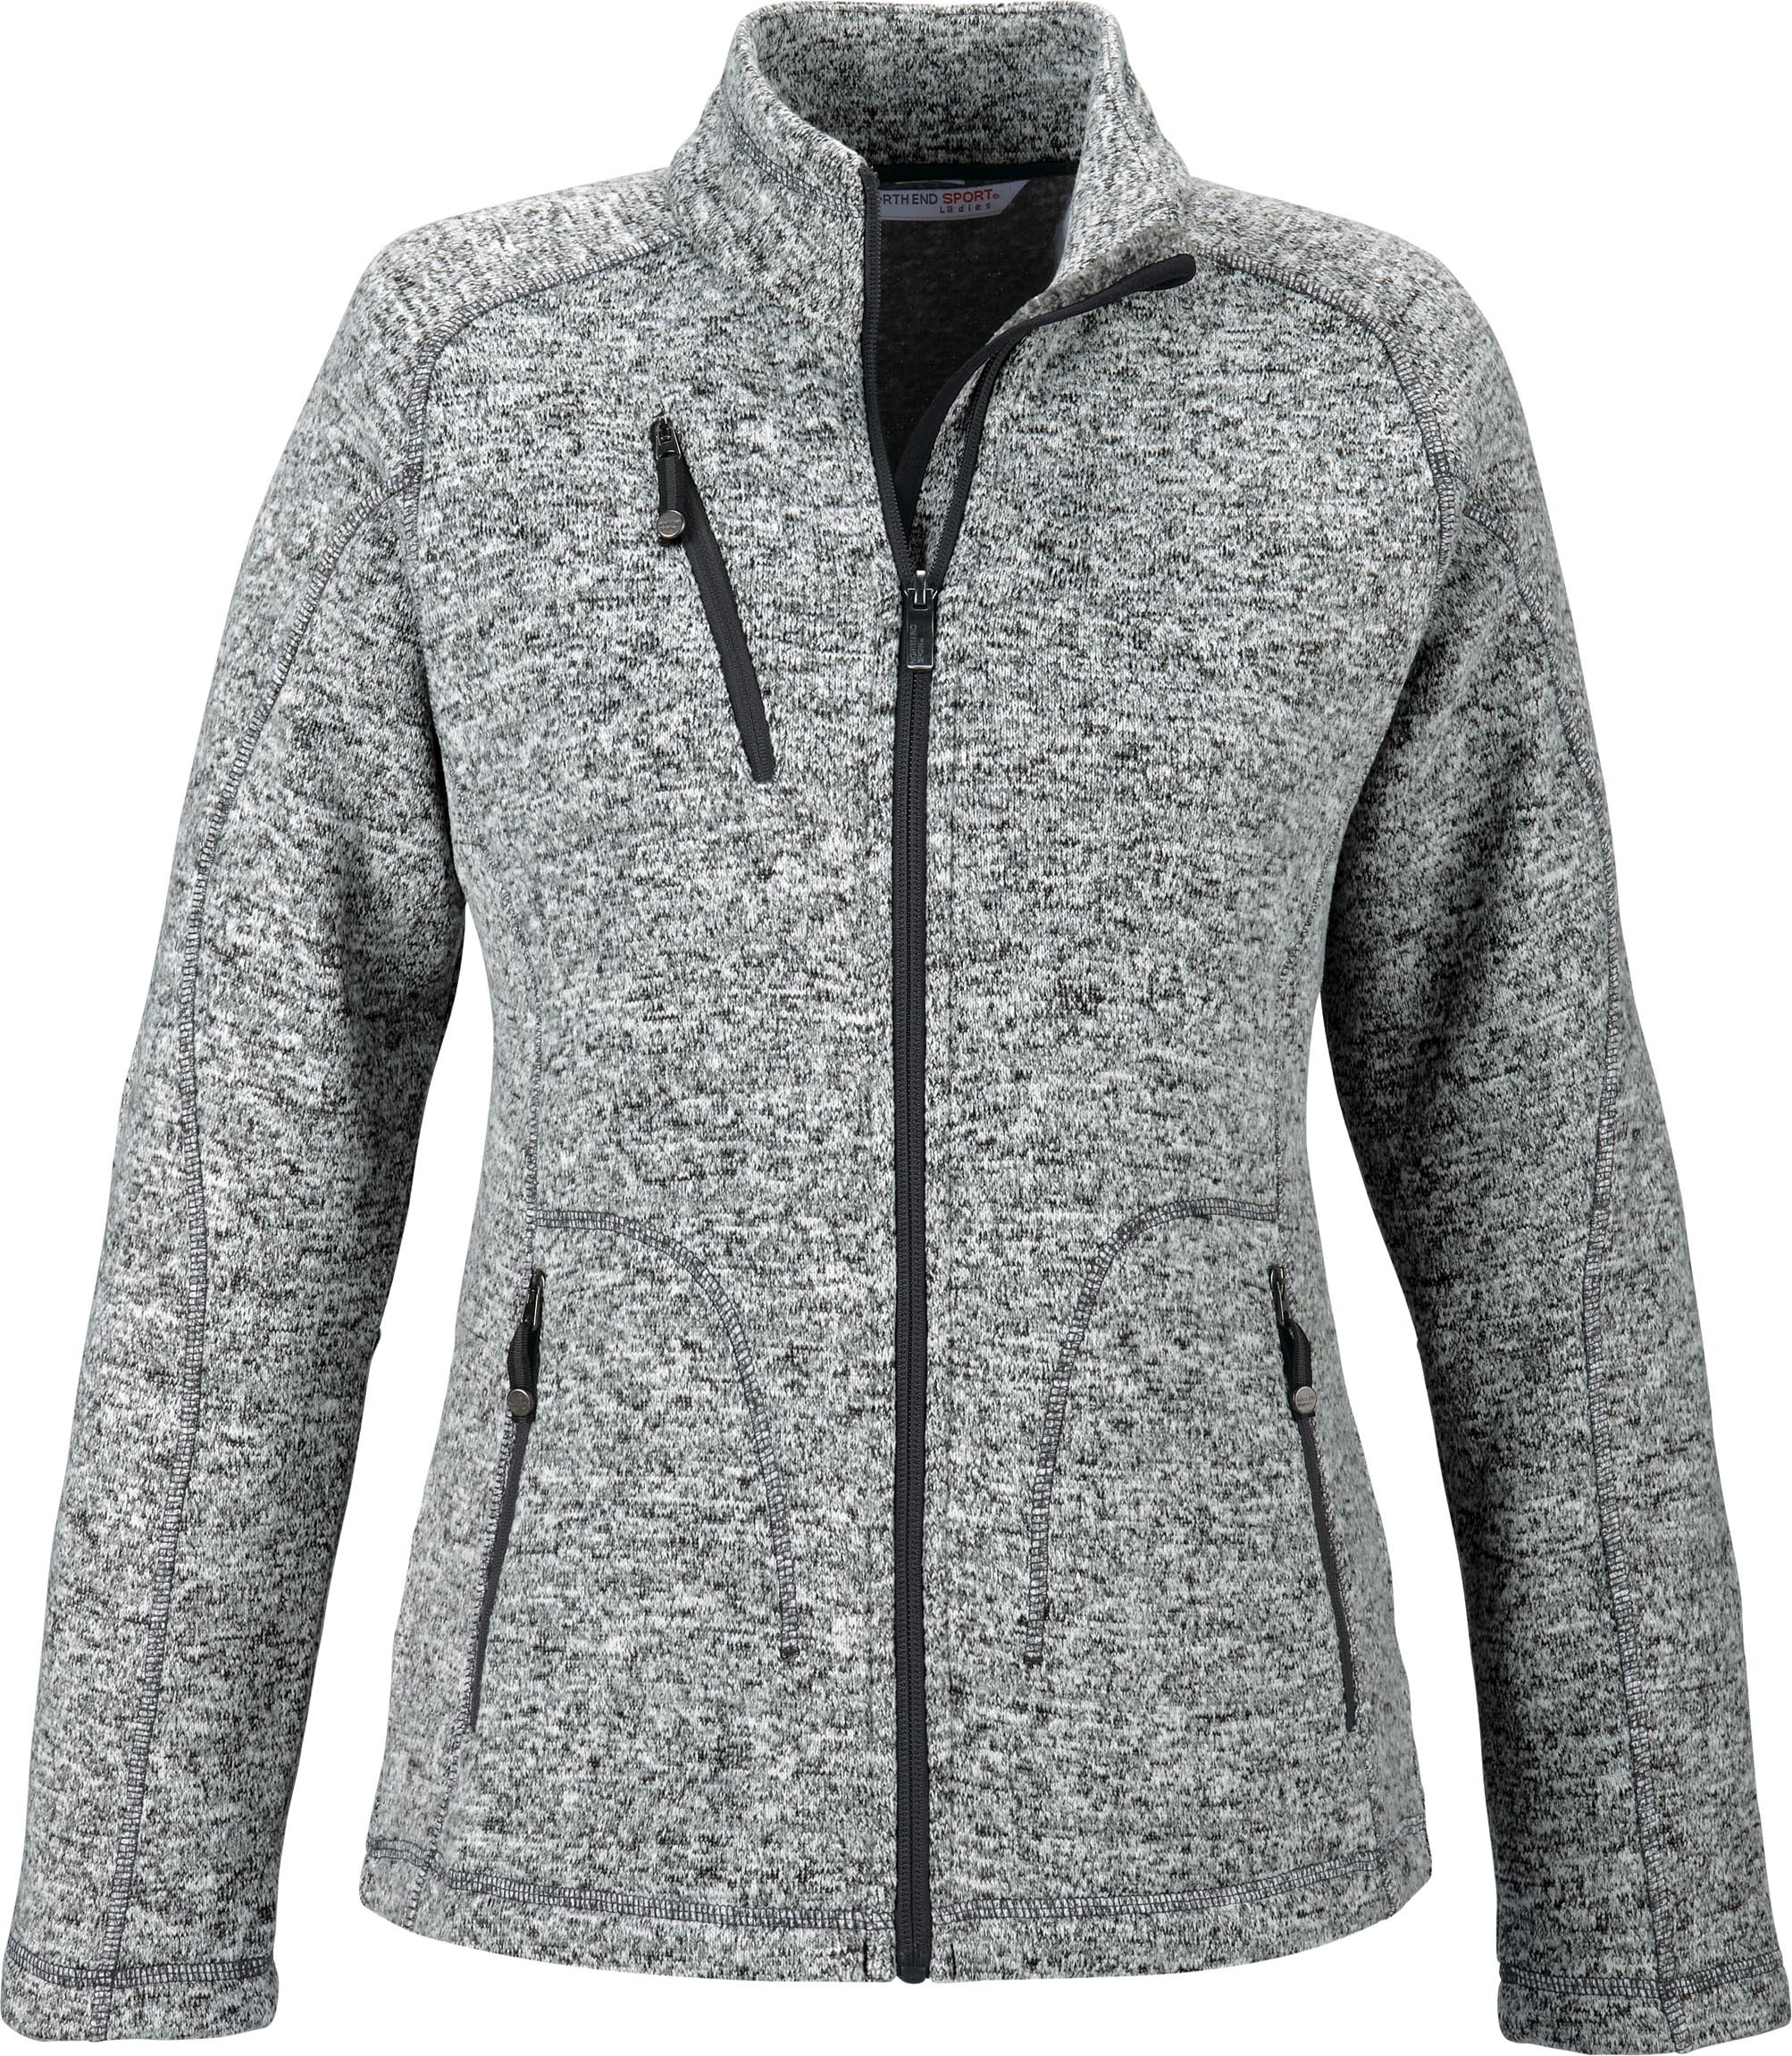 Ash City Poly Fleece 78669 - Peak Ladies' Sweater Fleece Jacket ...